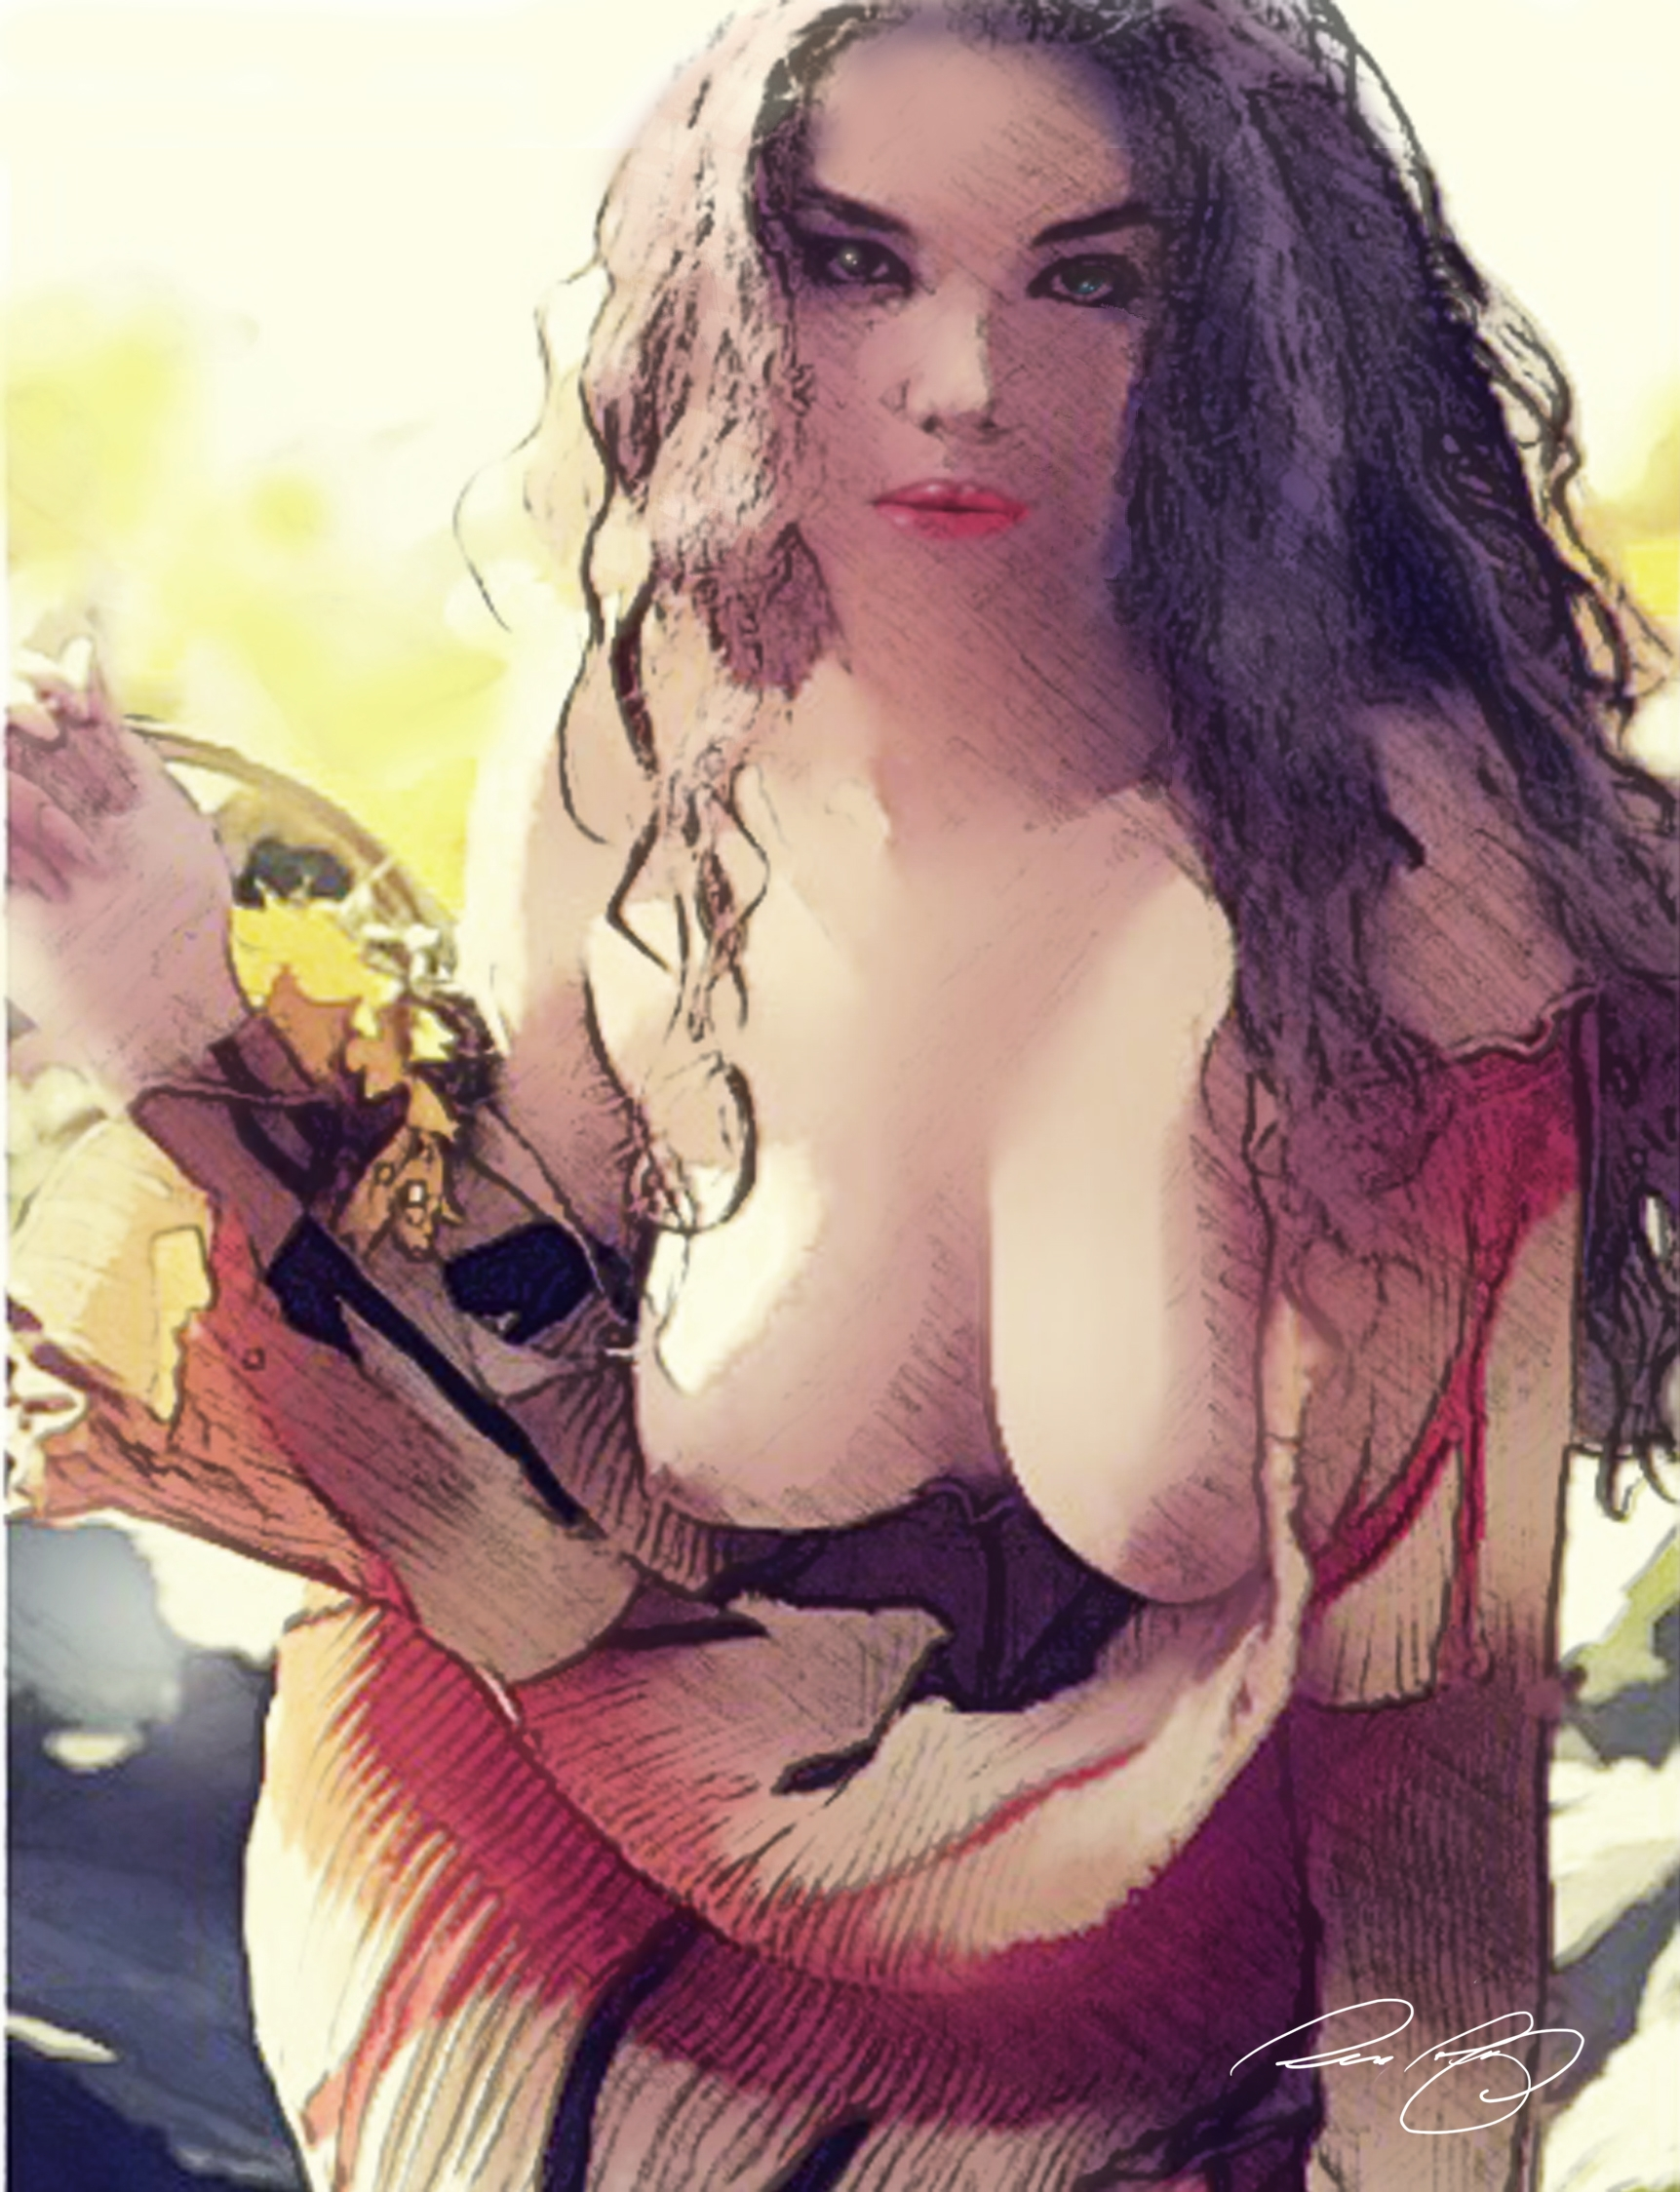 Flower-girl - illustration, sexywoman - rpoling | ello